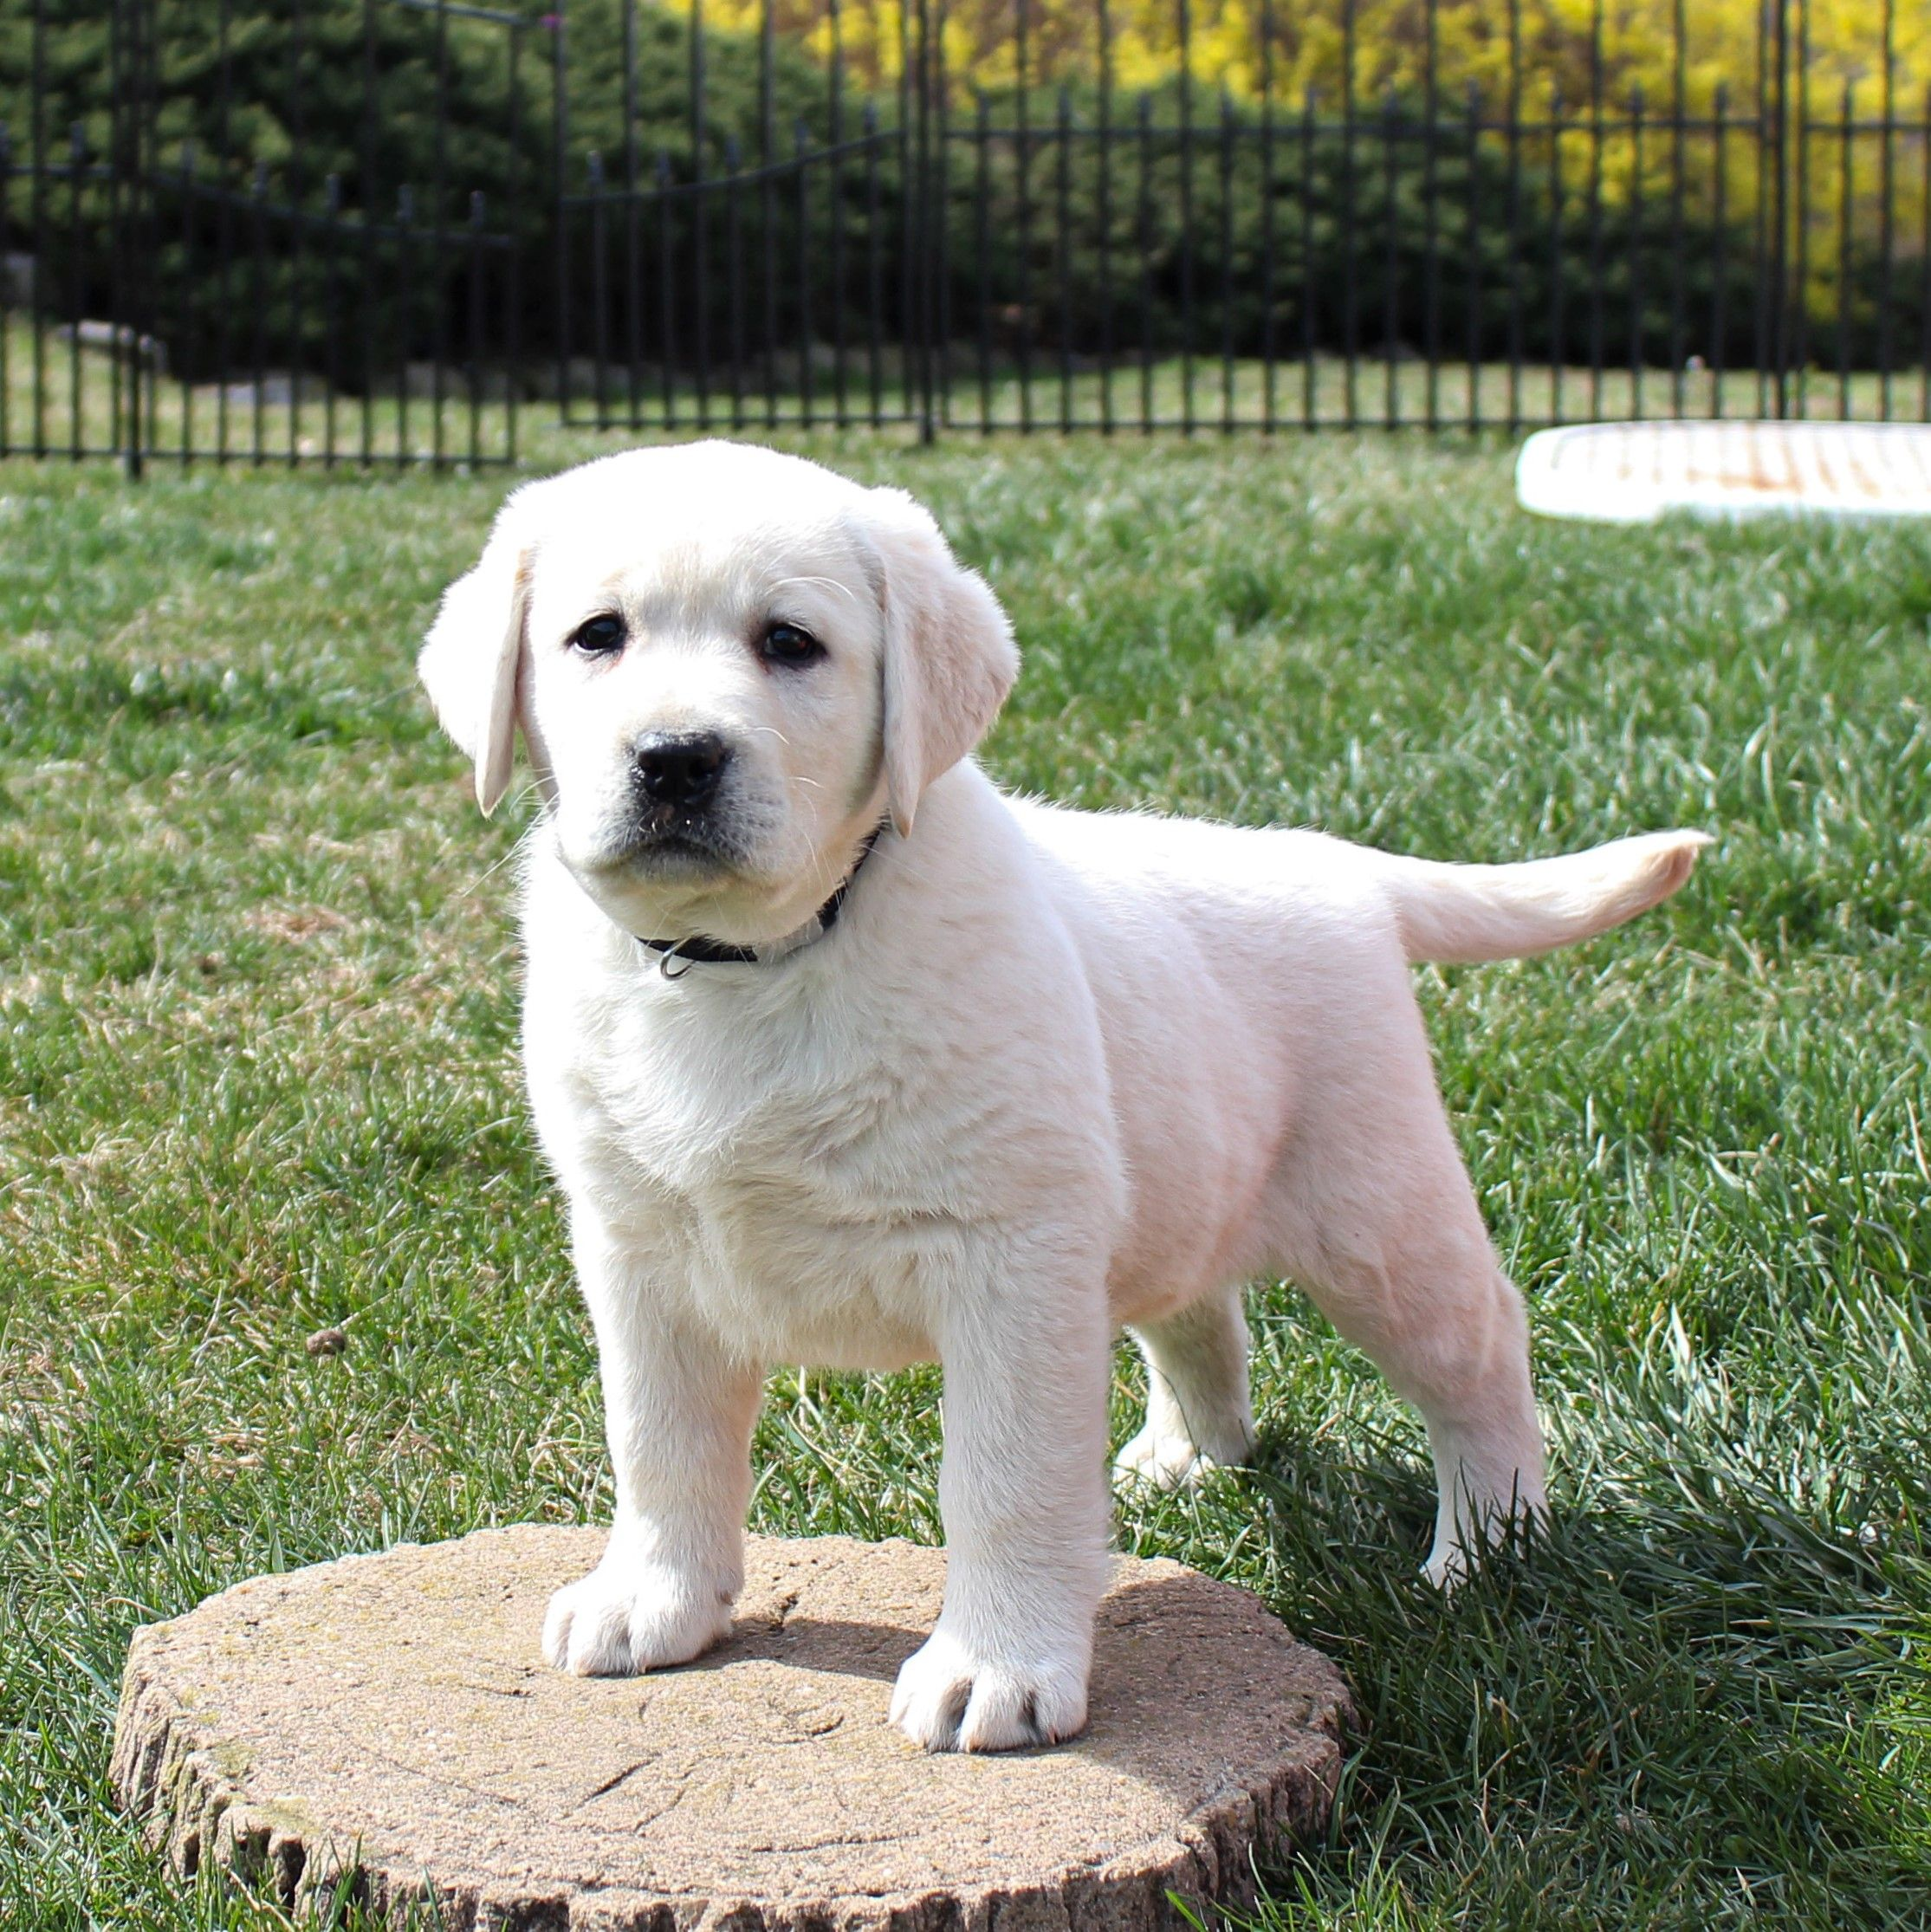 Labrador Retriever Puppies For Sale In 2020 Labrador Retriever Puppies Puppies Labrador Retriever